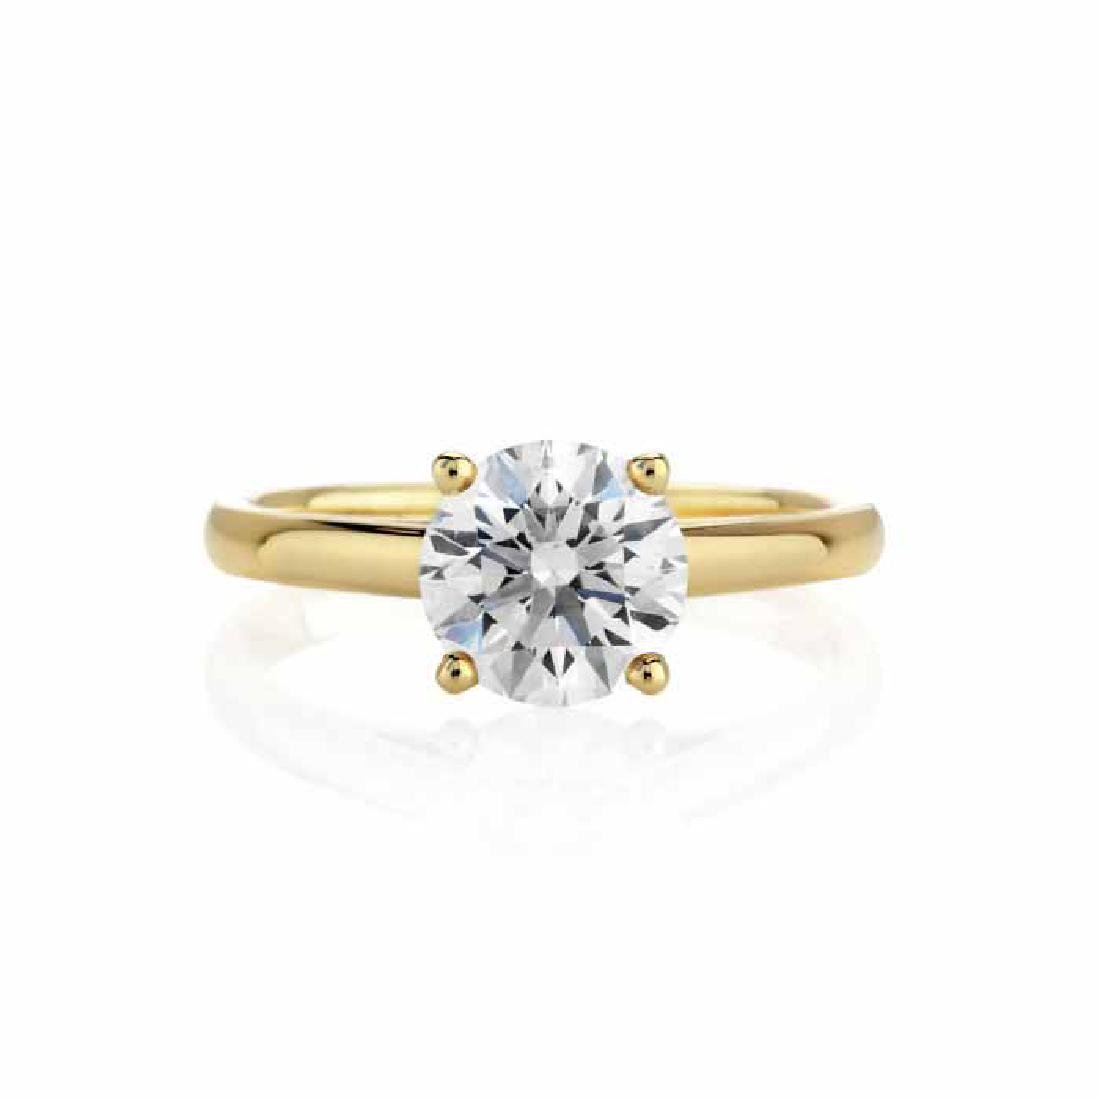 CERTIFIED 0.9 CTW I/VS1 ROUND DIAMOND SOLITAIRE RING IN